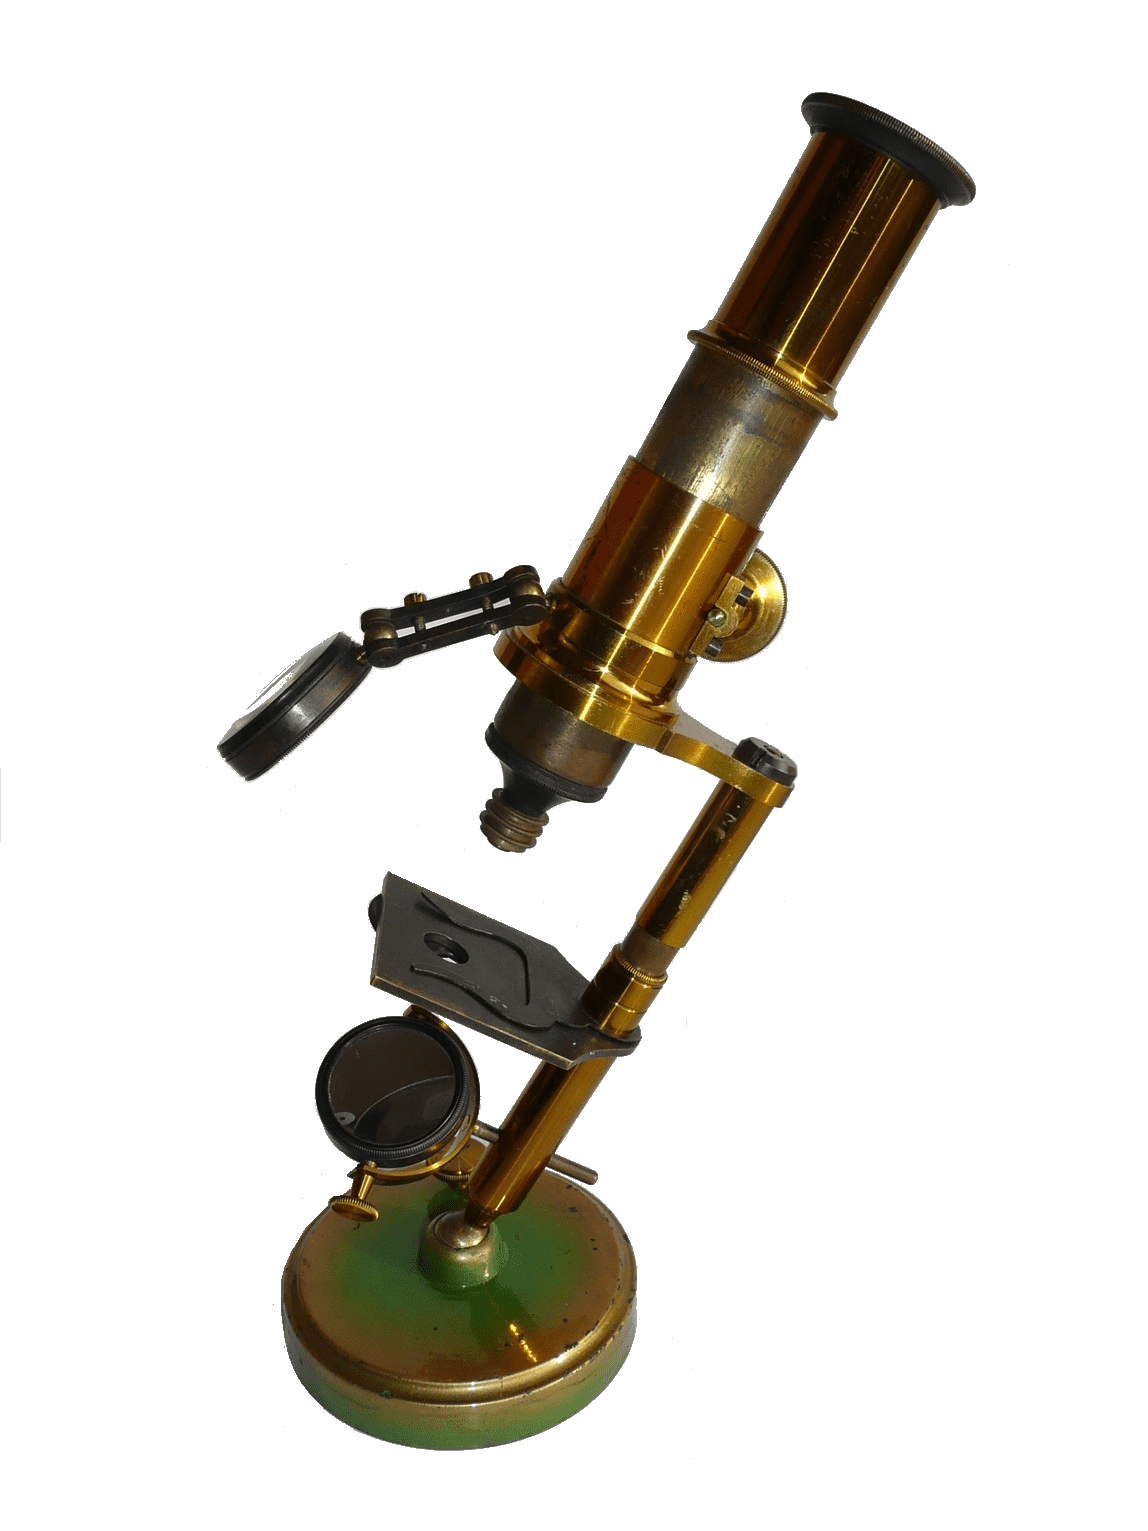 French pillar microscope